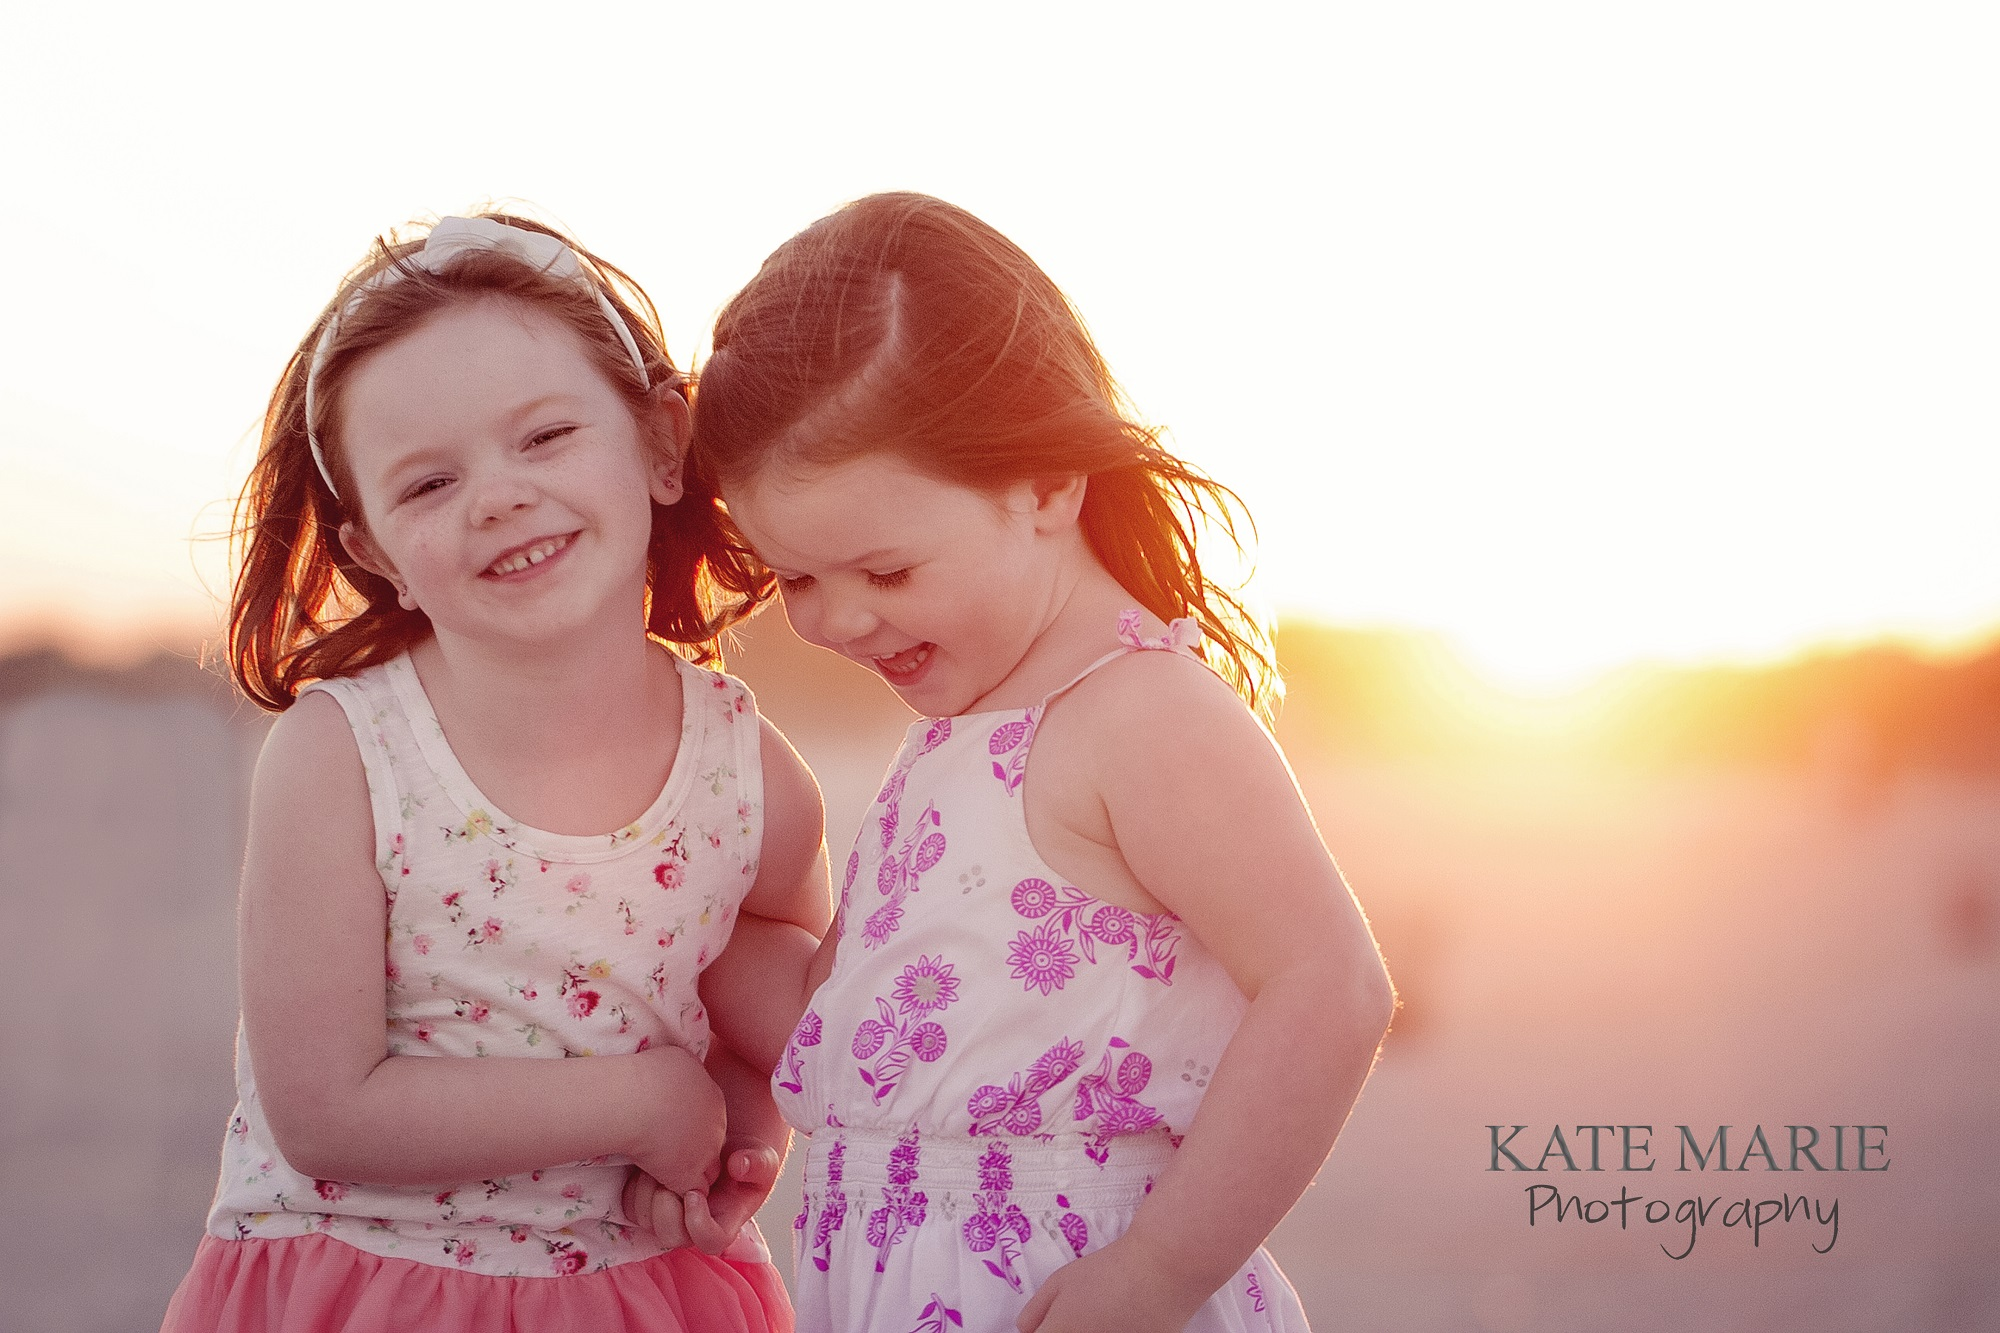 Family photography - Kate Marie Photography // 8 Tips for Starting a Photography Business